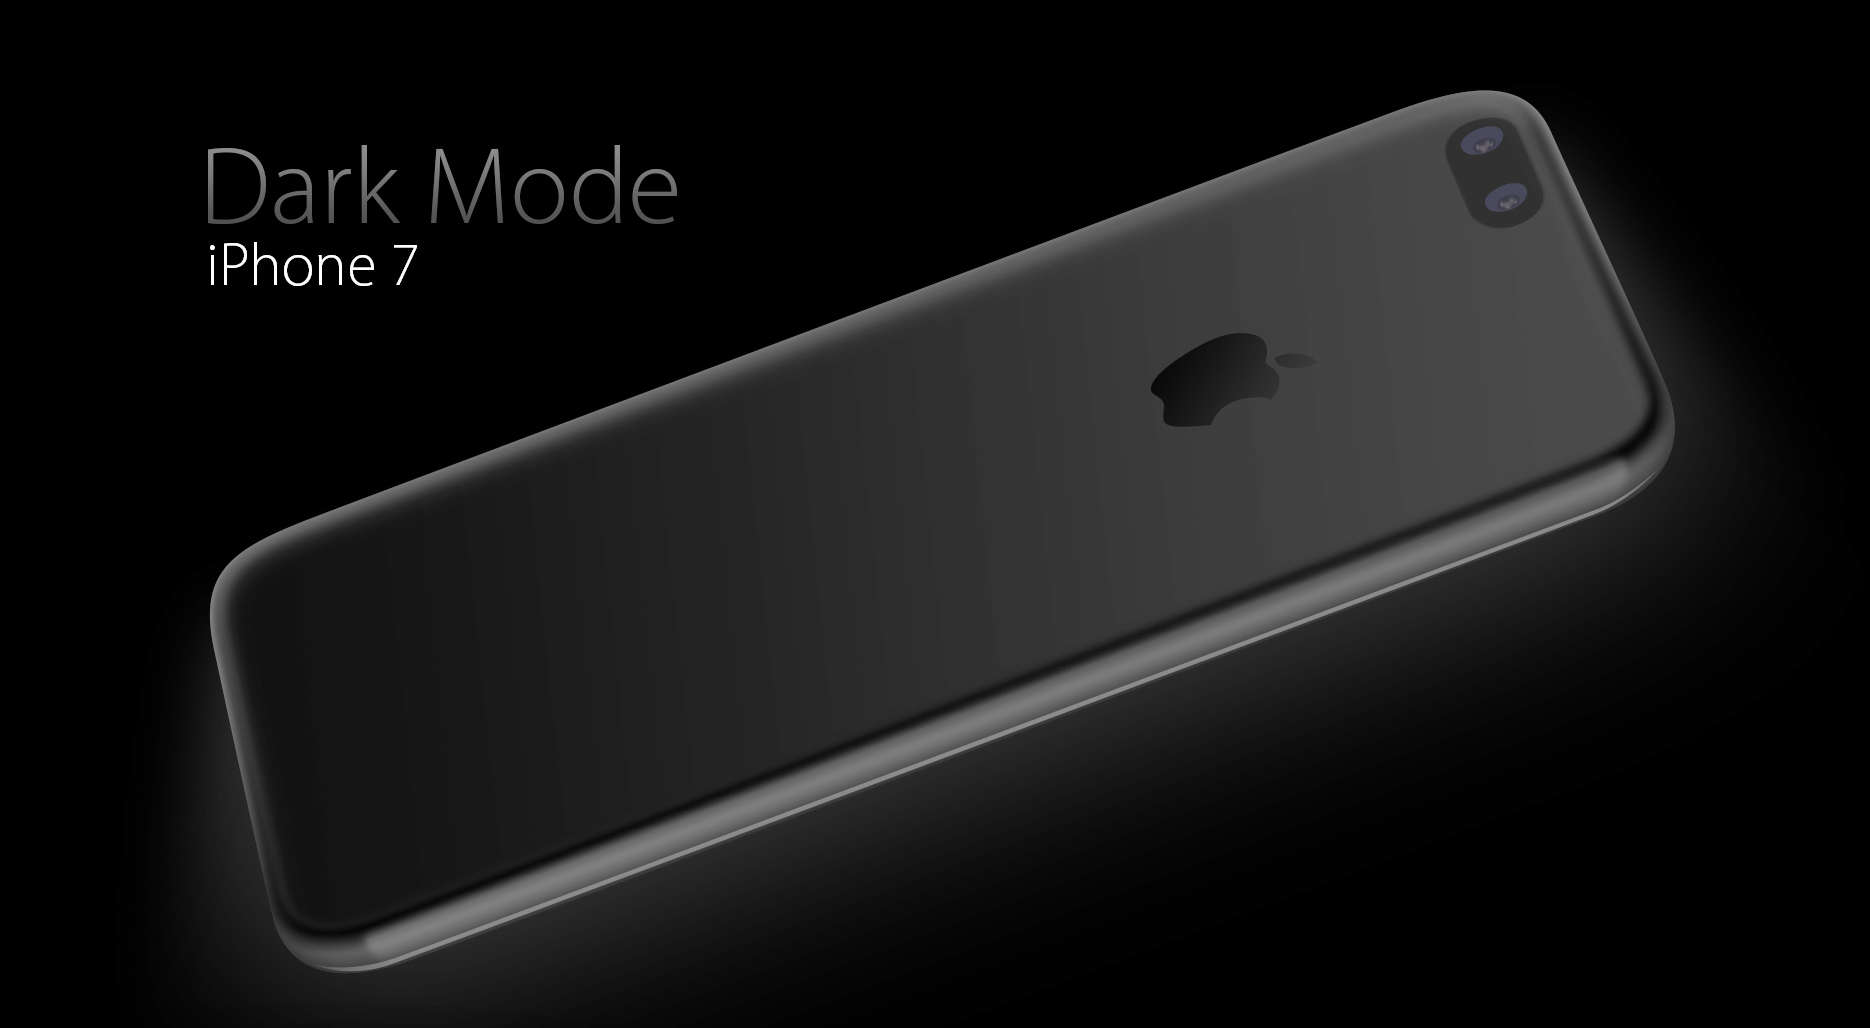 iPhone 7 could look super-sleek with no camera bulge or antenna lines